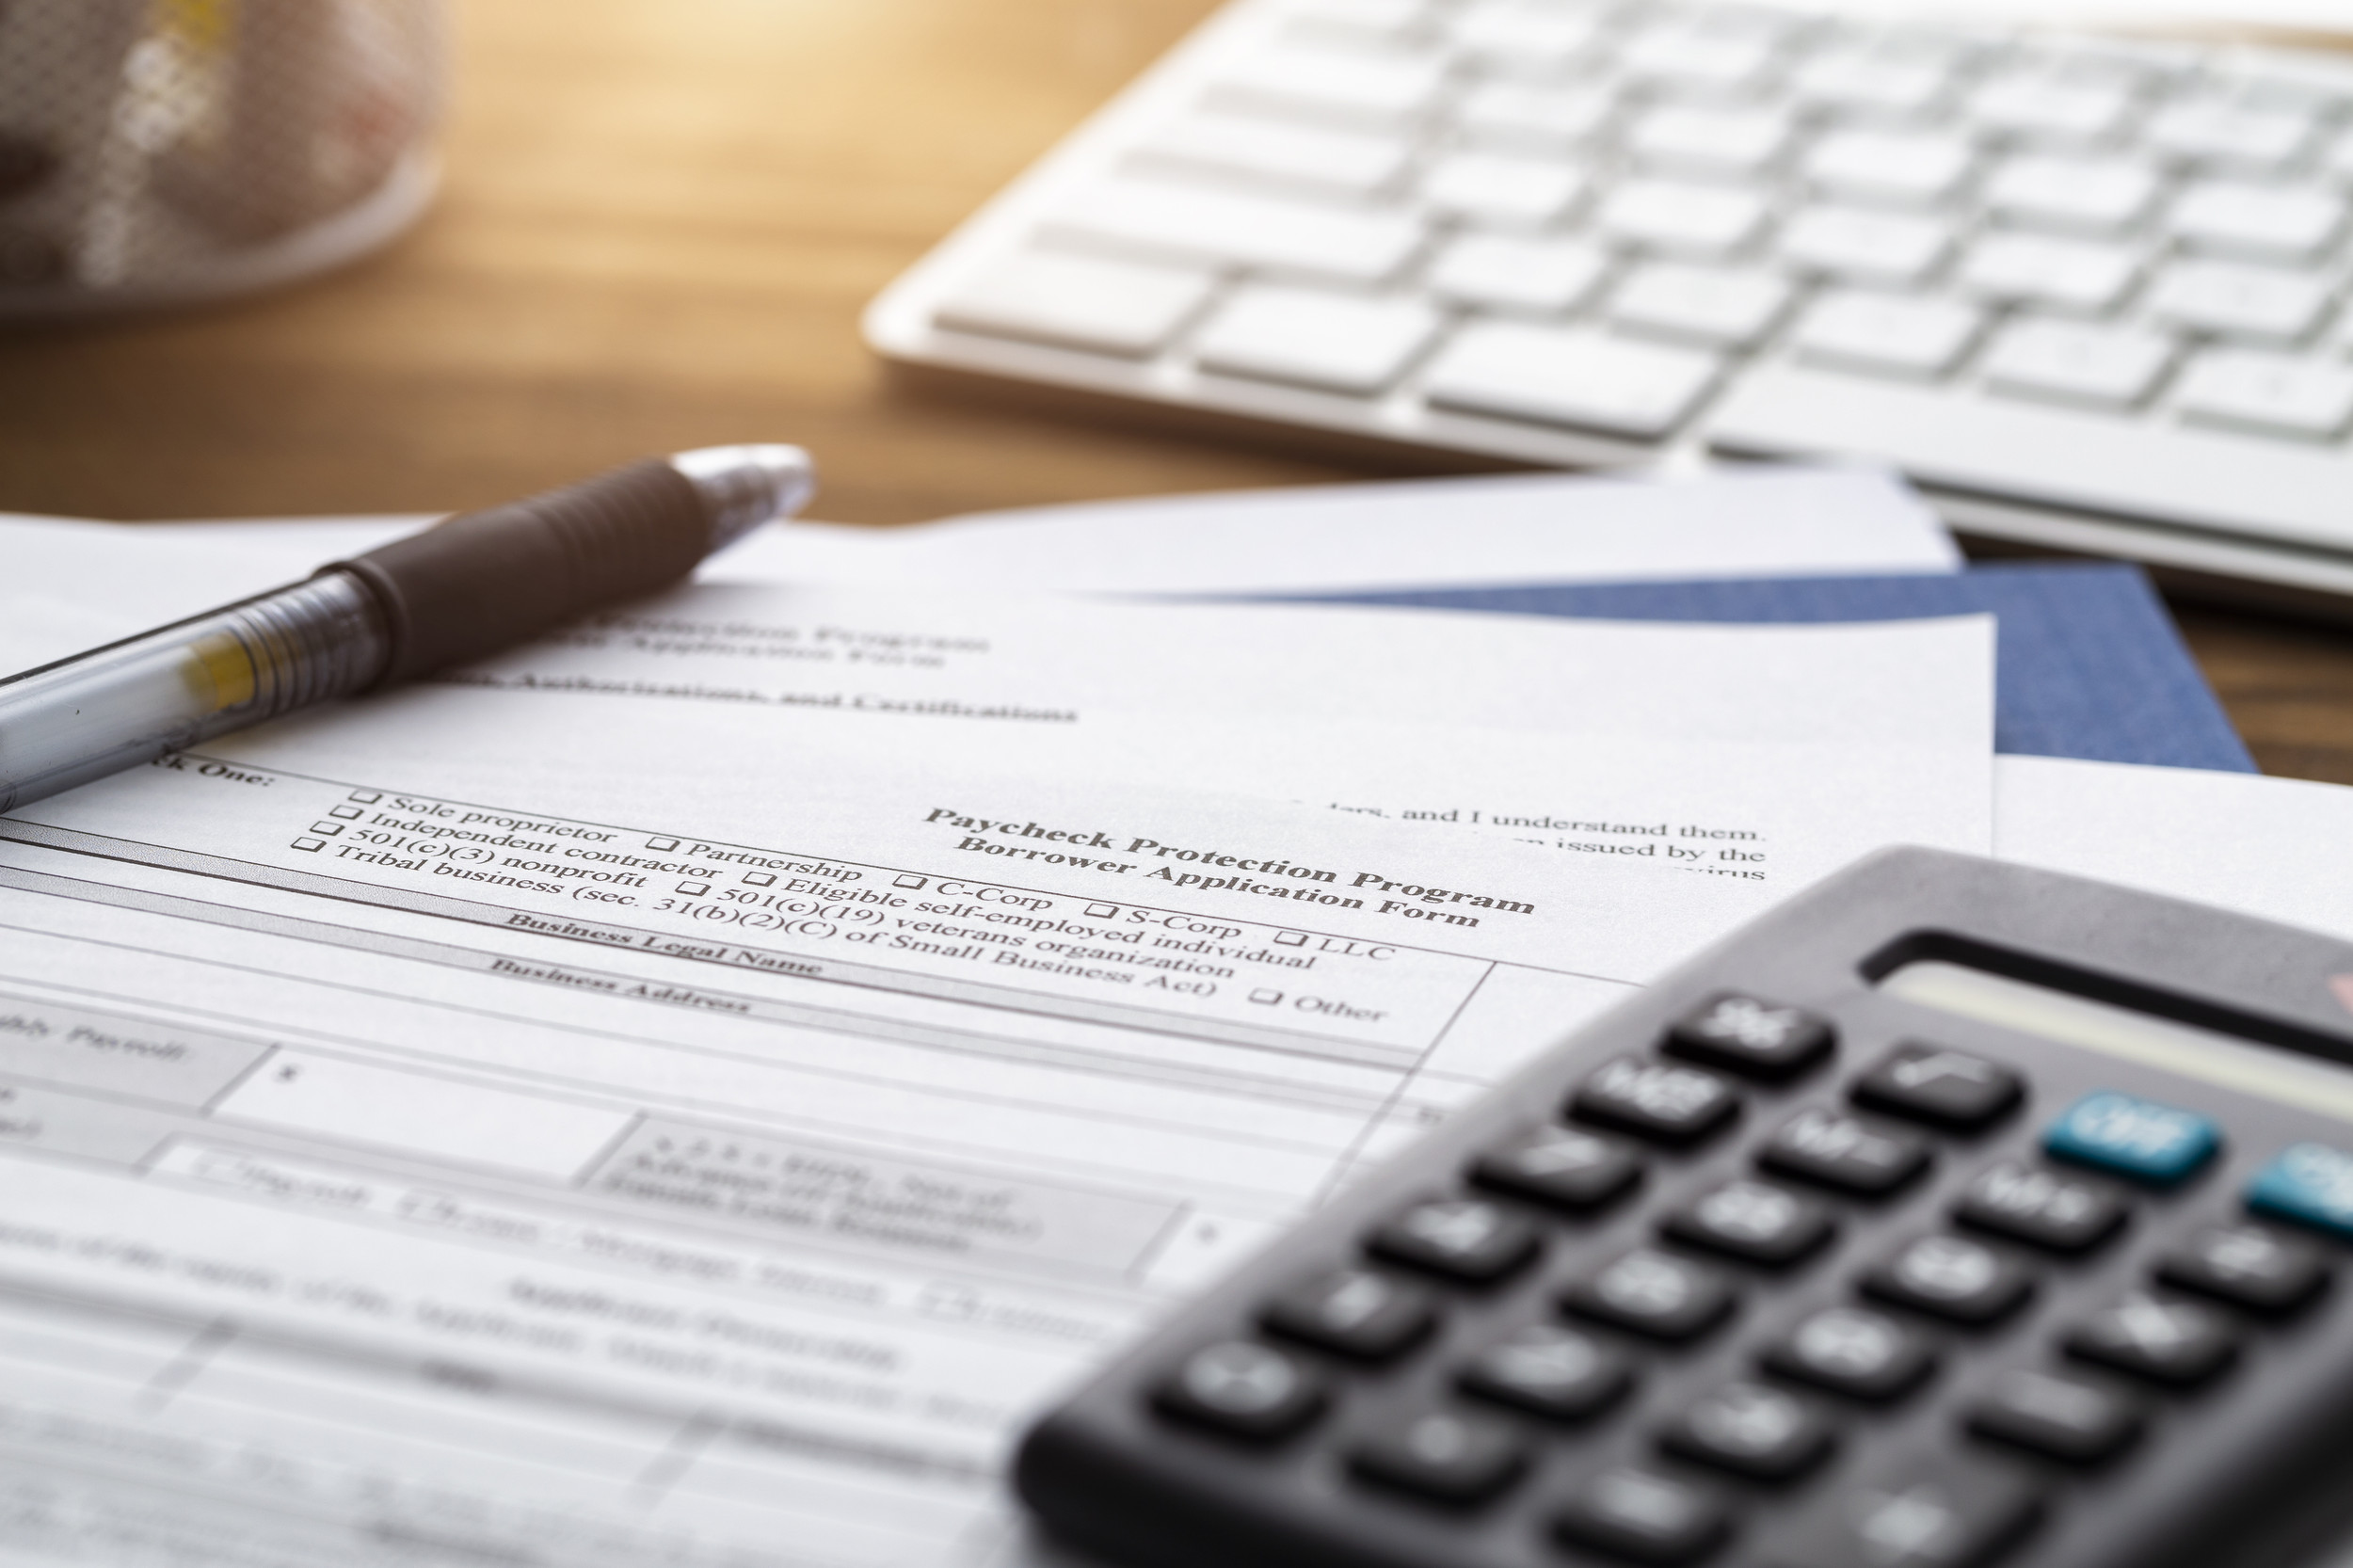 Unemployment benefits are taxed, but you get to choose how